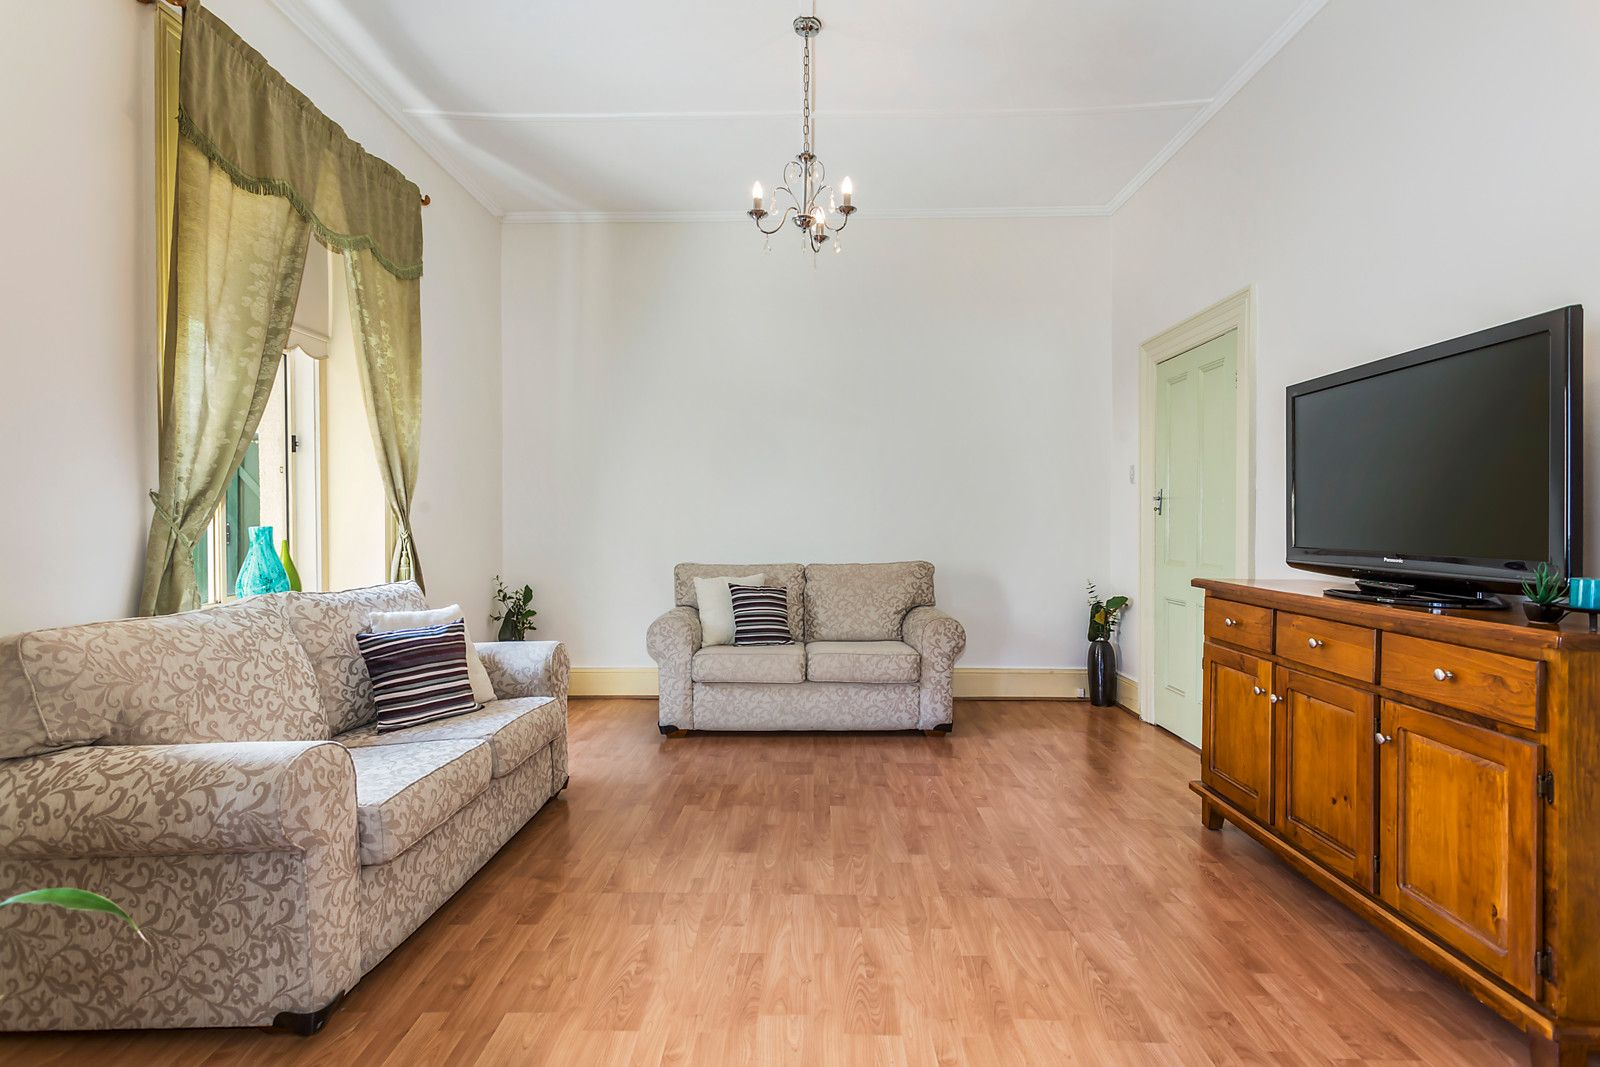 221 Ascot Vale Road, Ascot Vale VIC 3032, Image 1